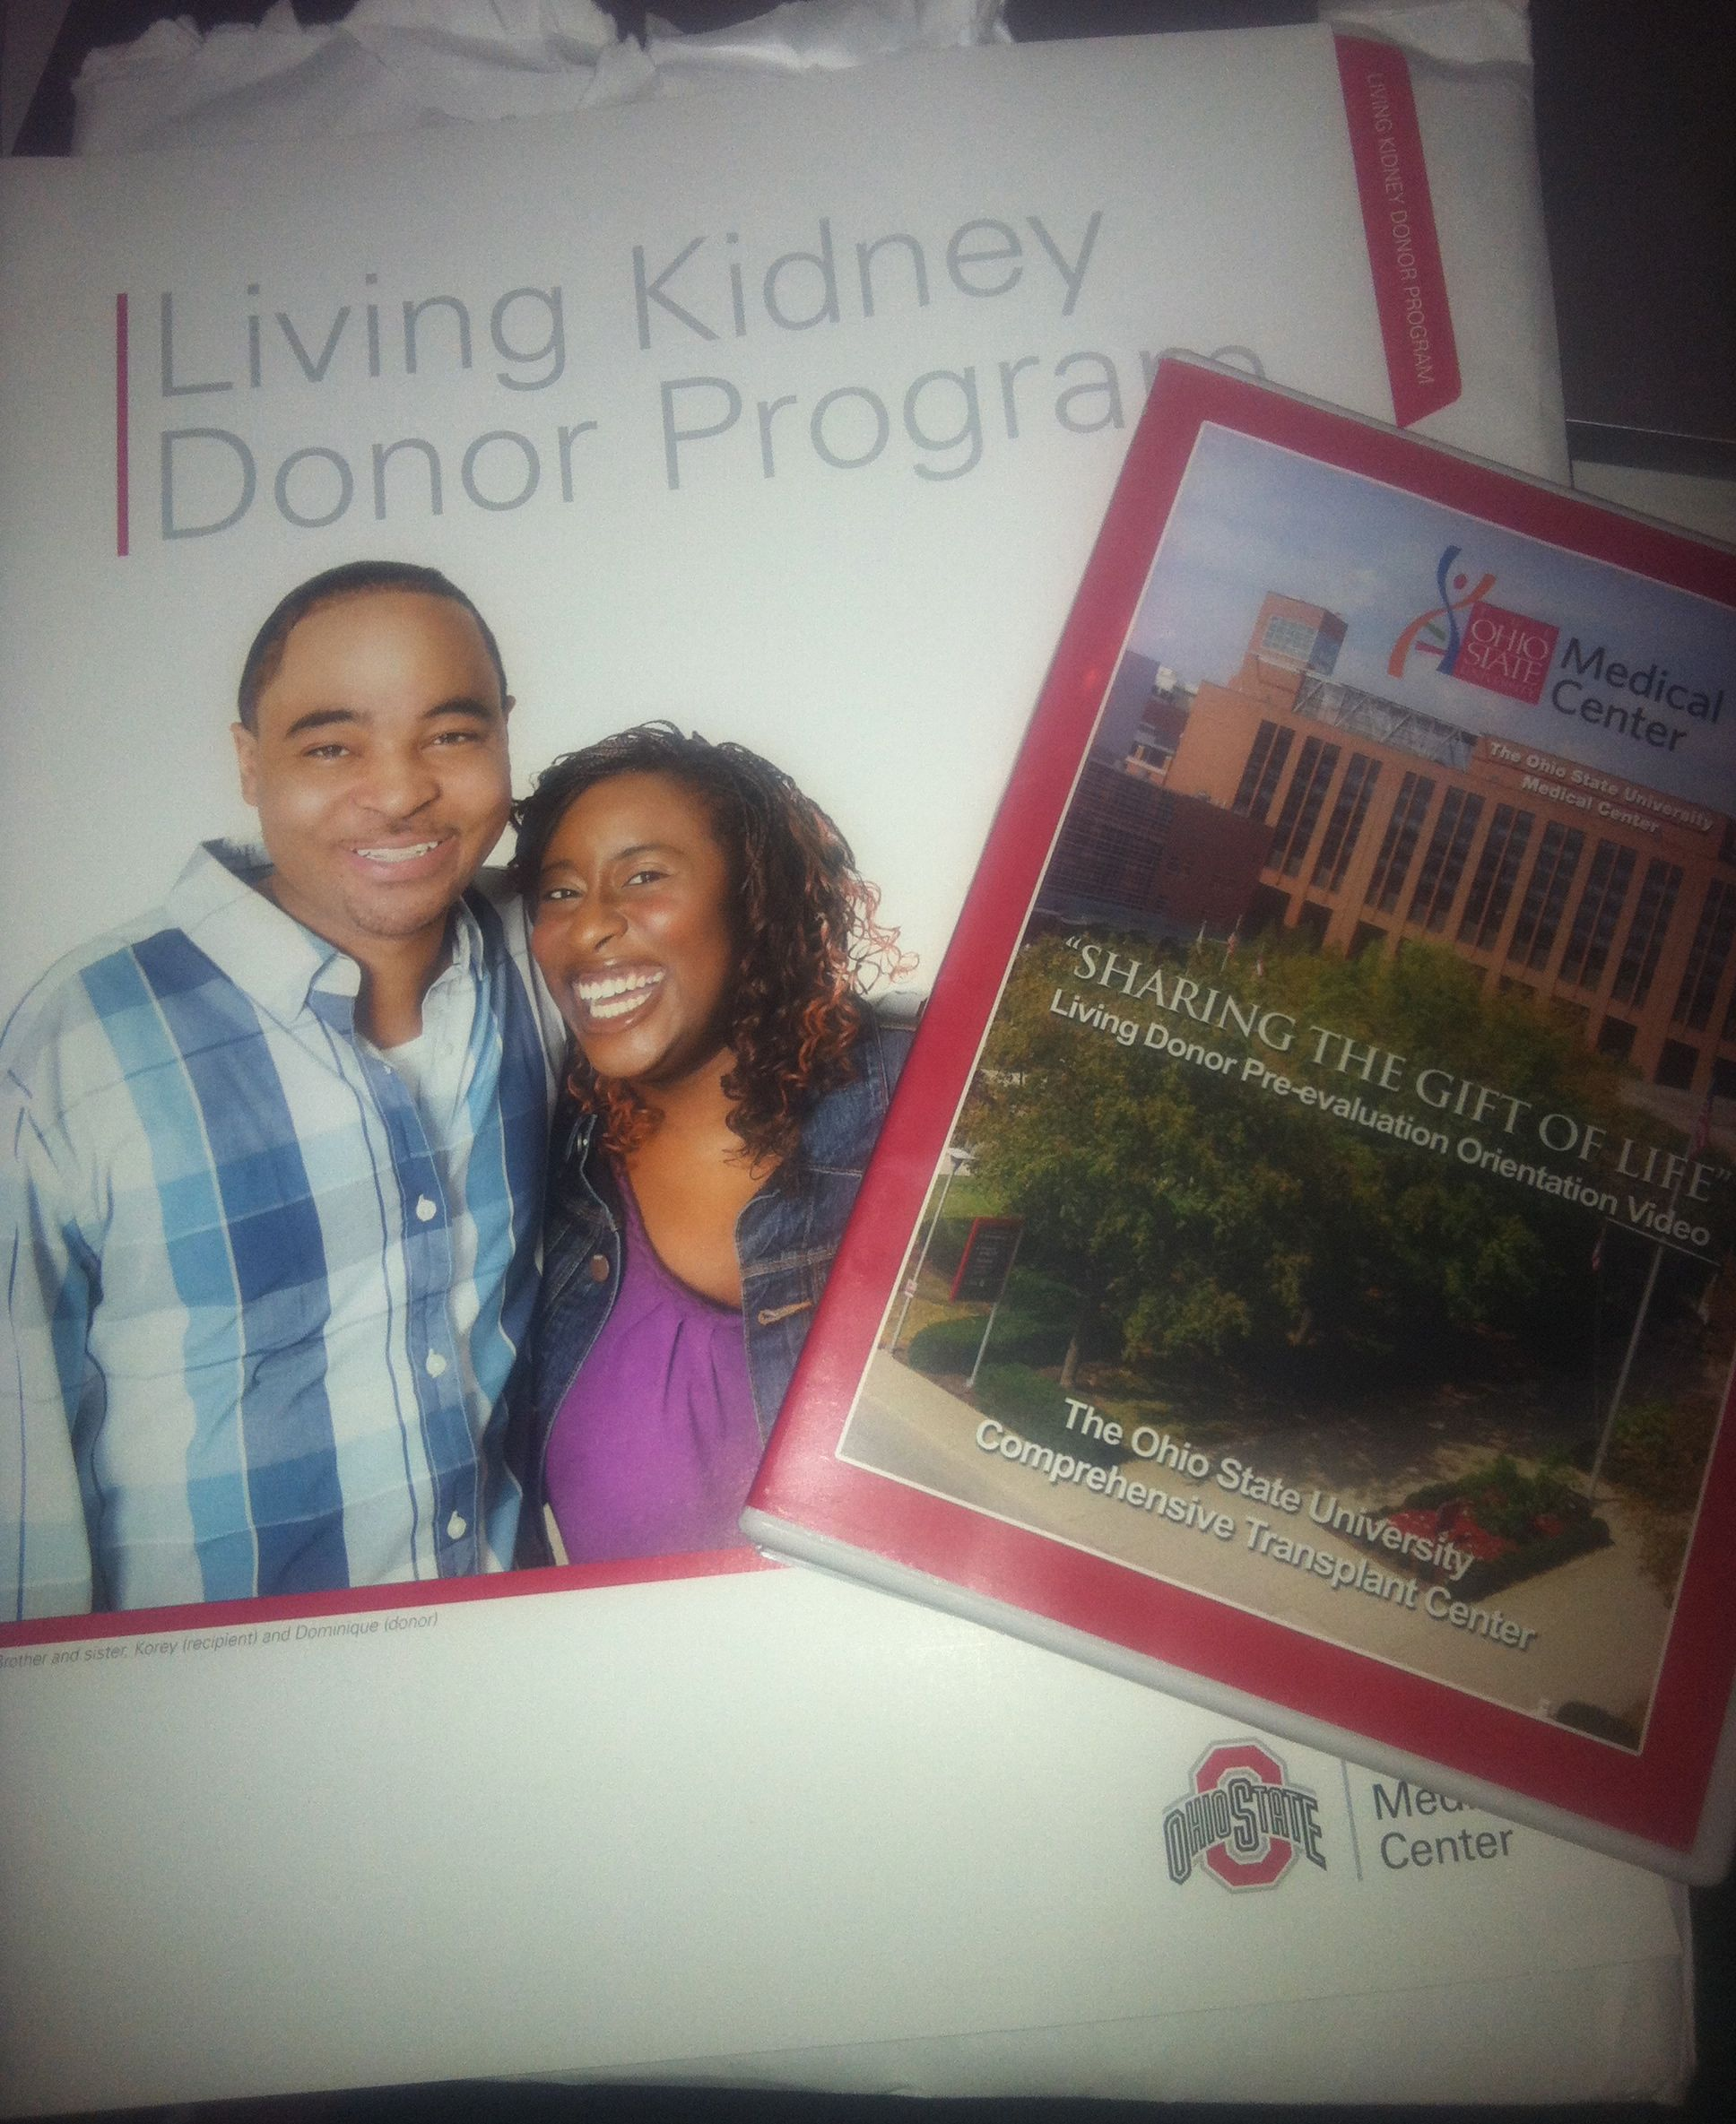 packet of information from OSU Wexner Medical Center about kidney donation